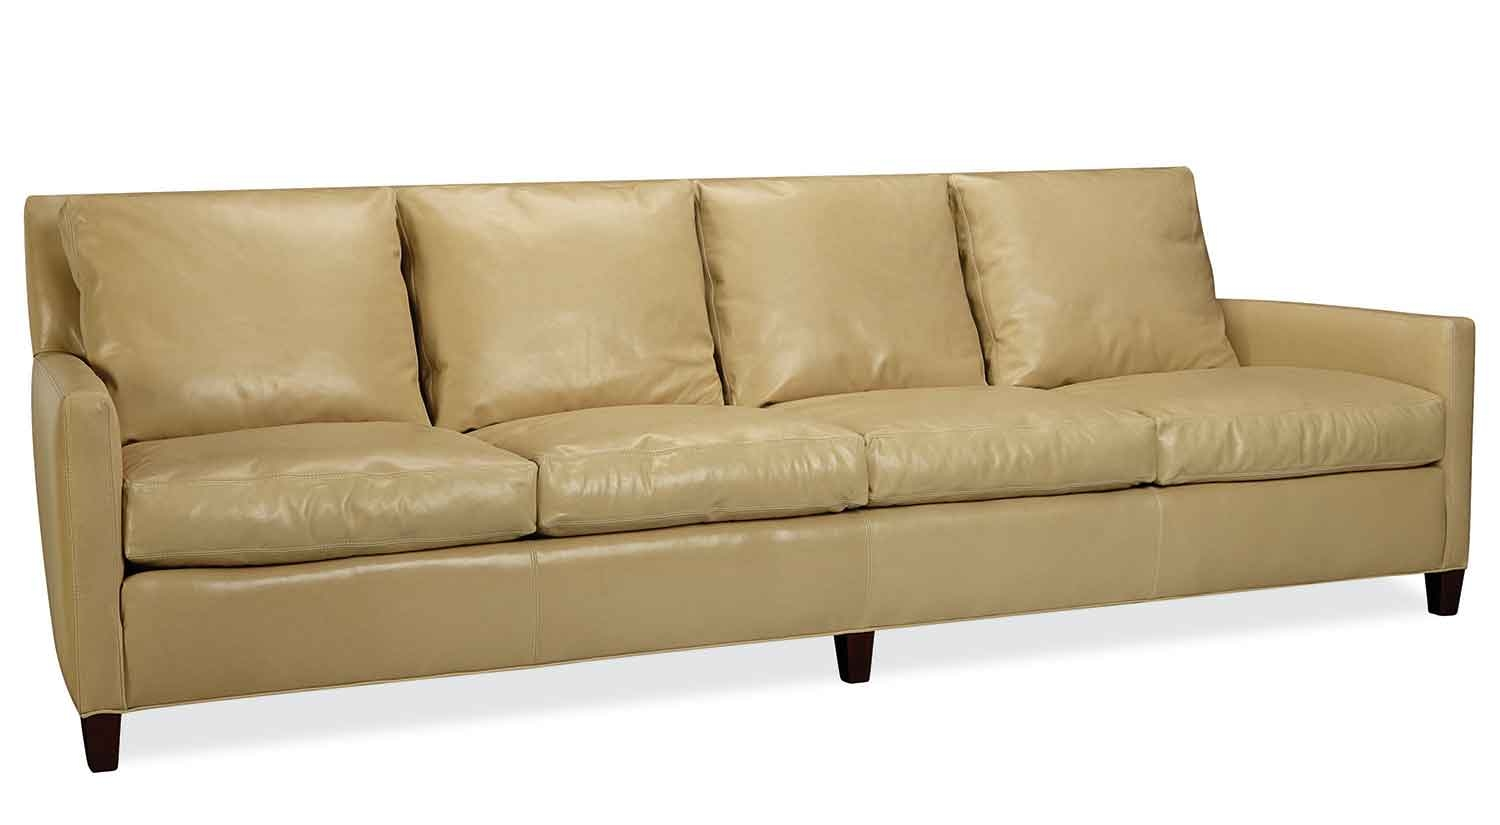 Featured Image of 4 Seater Couch